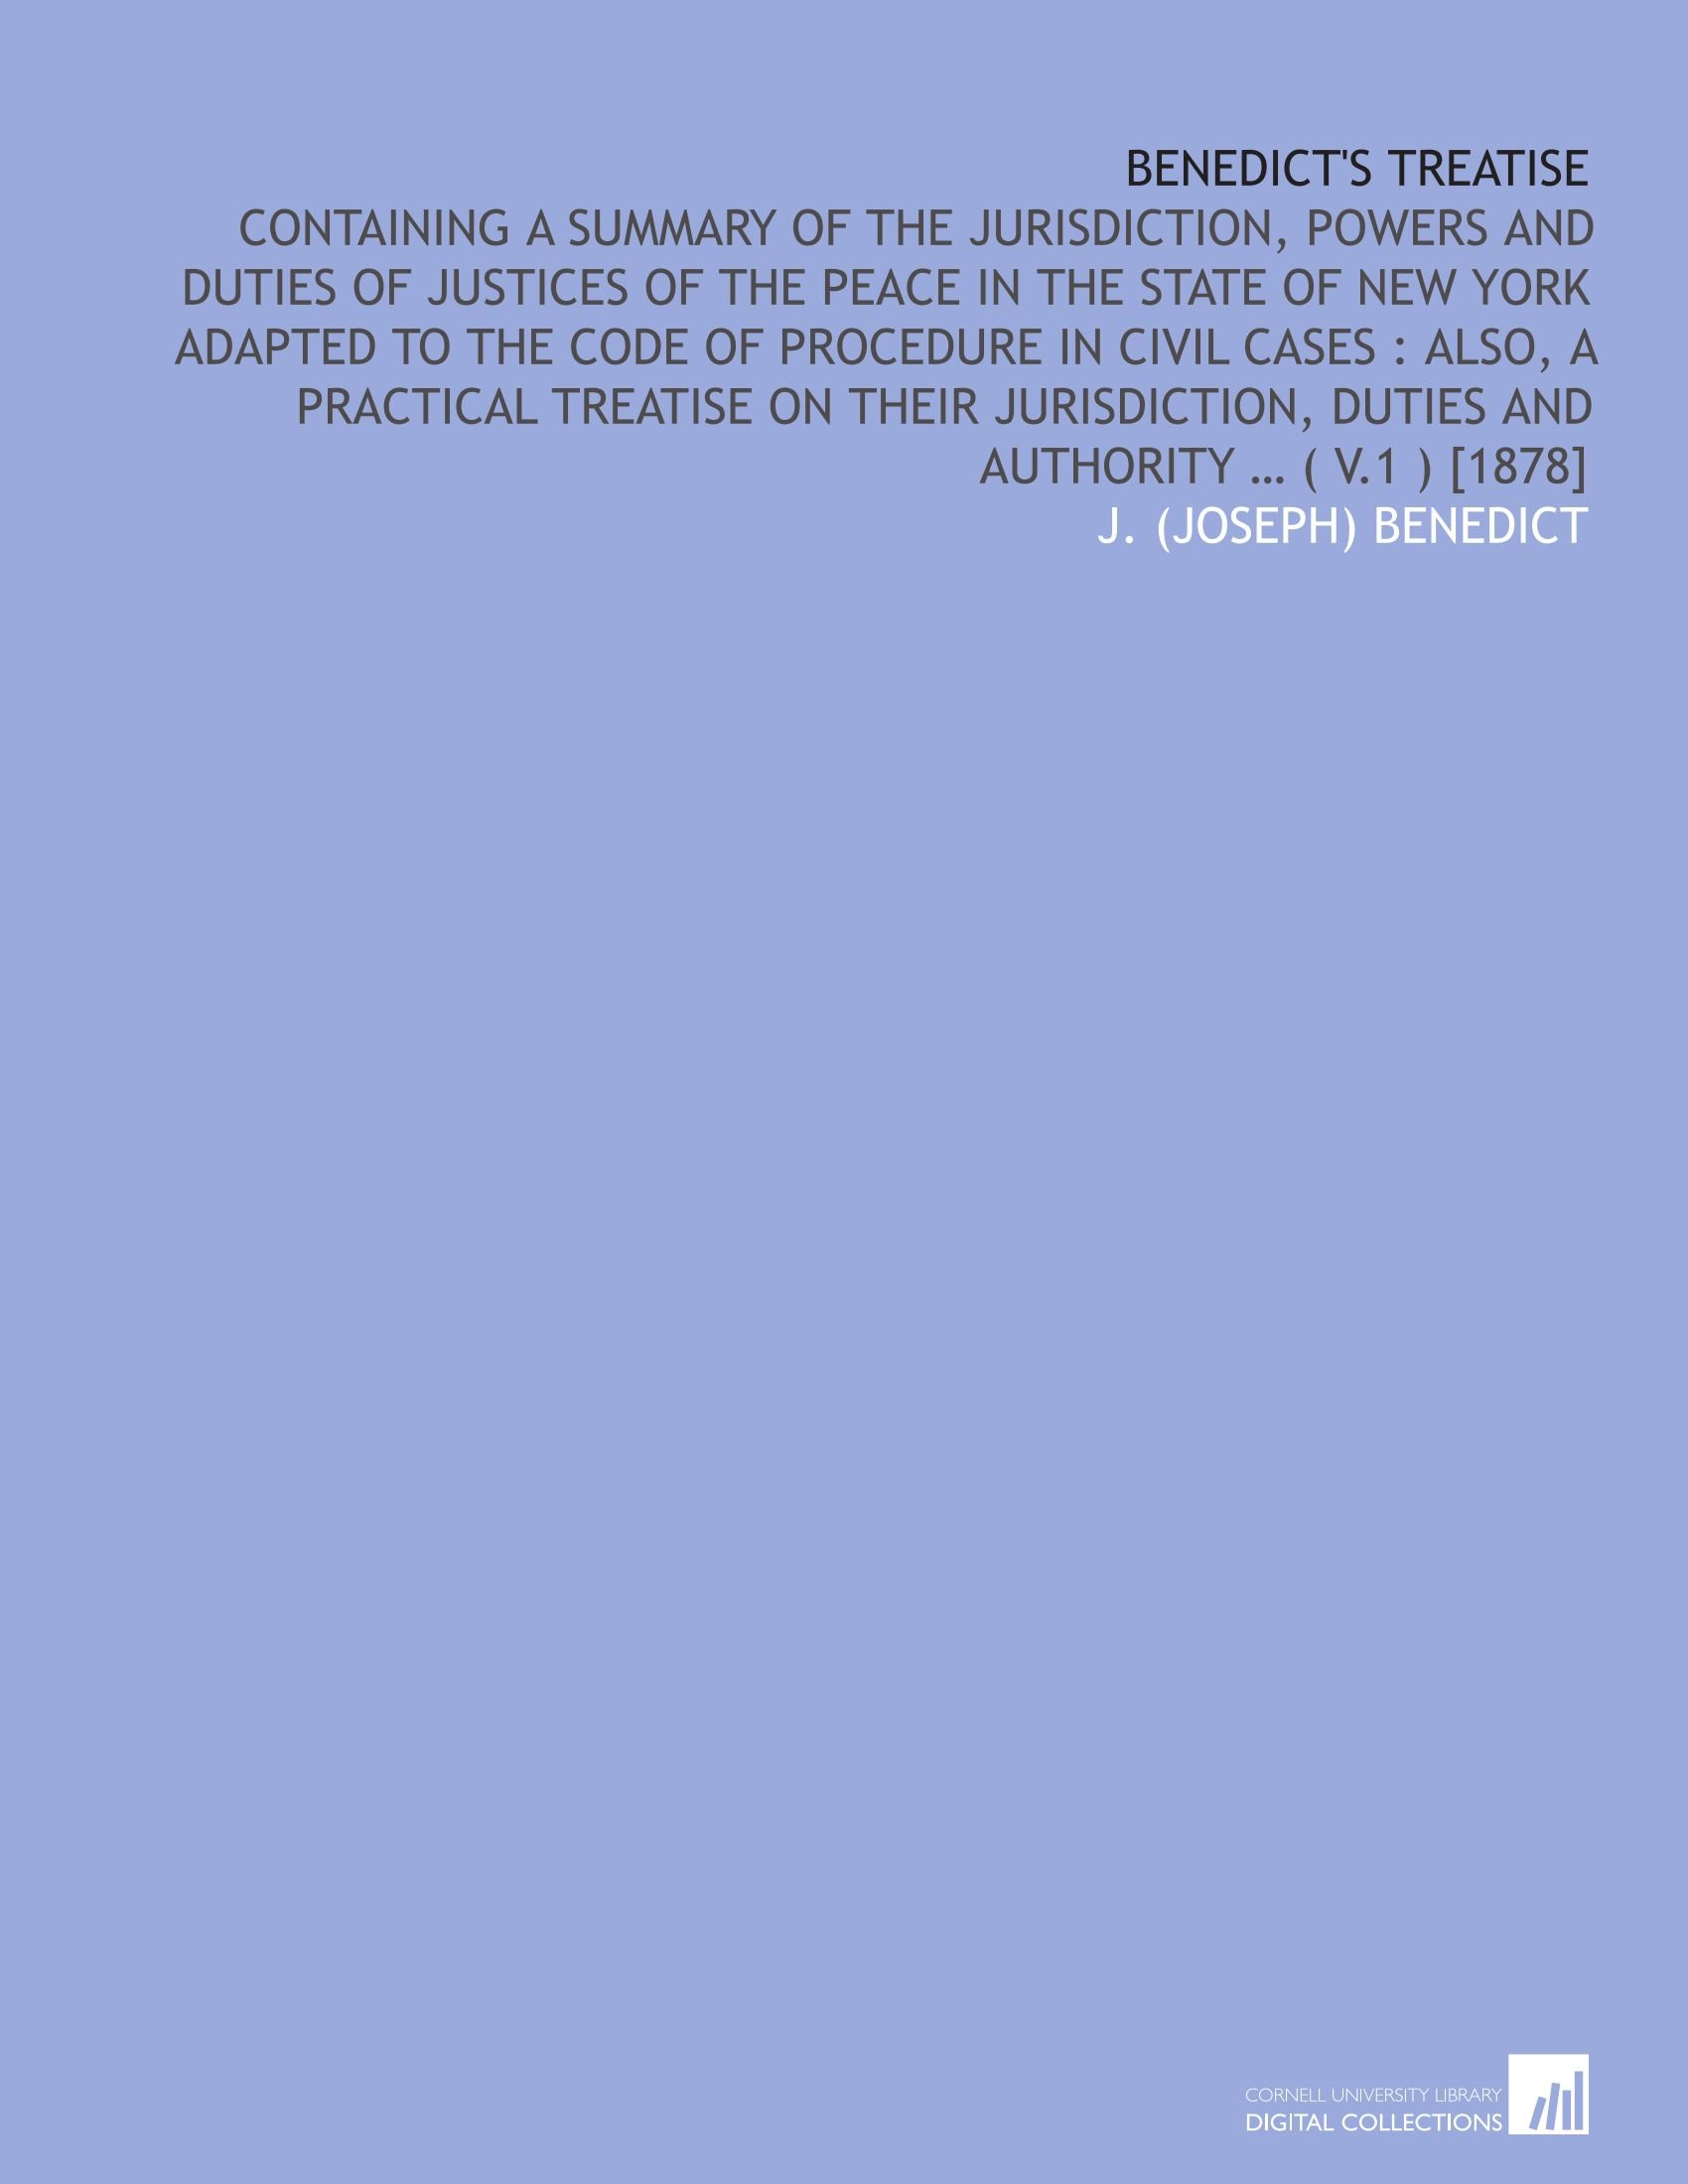 Benedict's treatise: containing a summary of the jurisdiction, powers and duties of justices of the peace in the State of New York adapted to the code ... duties and authority … ( v.1 ) [1878] ebook